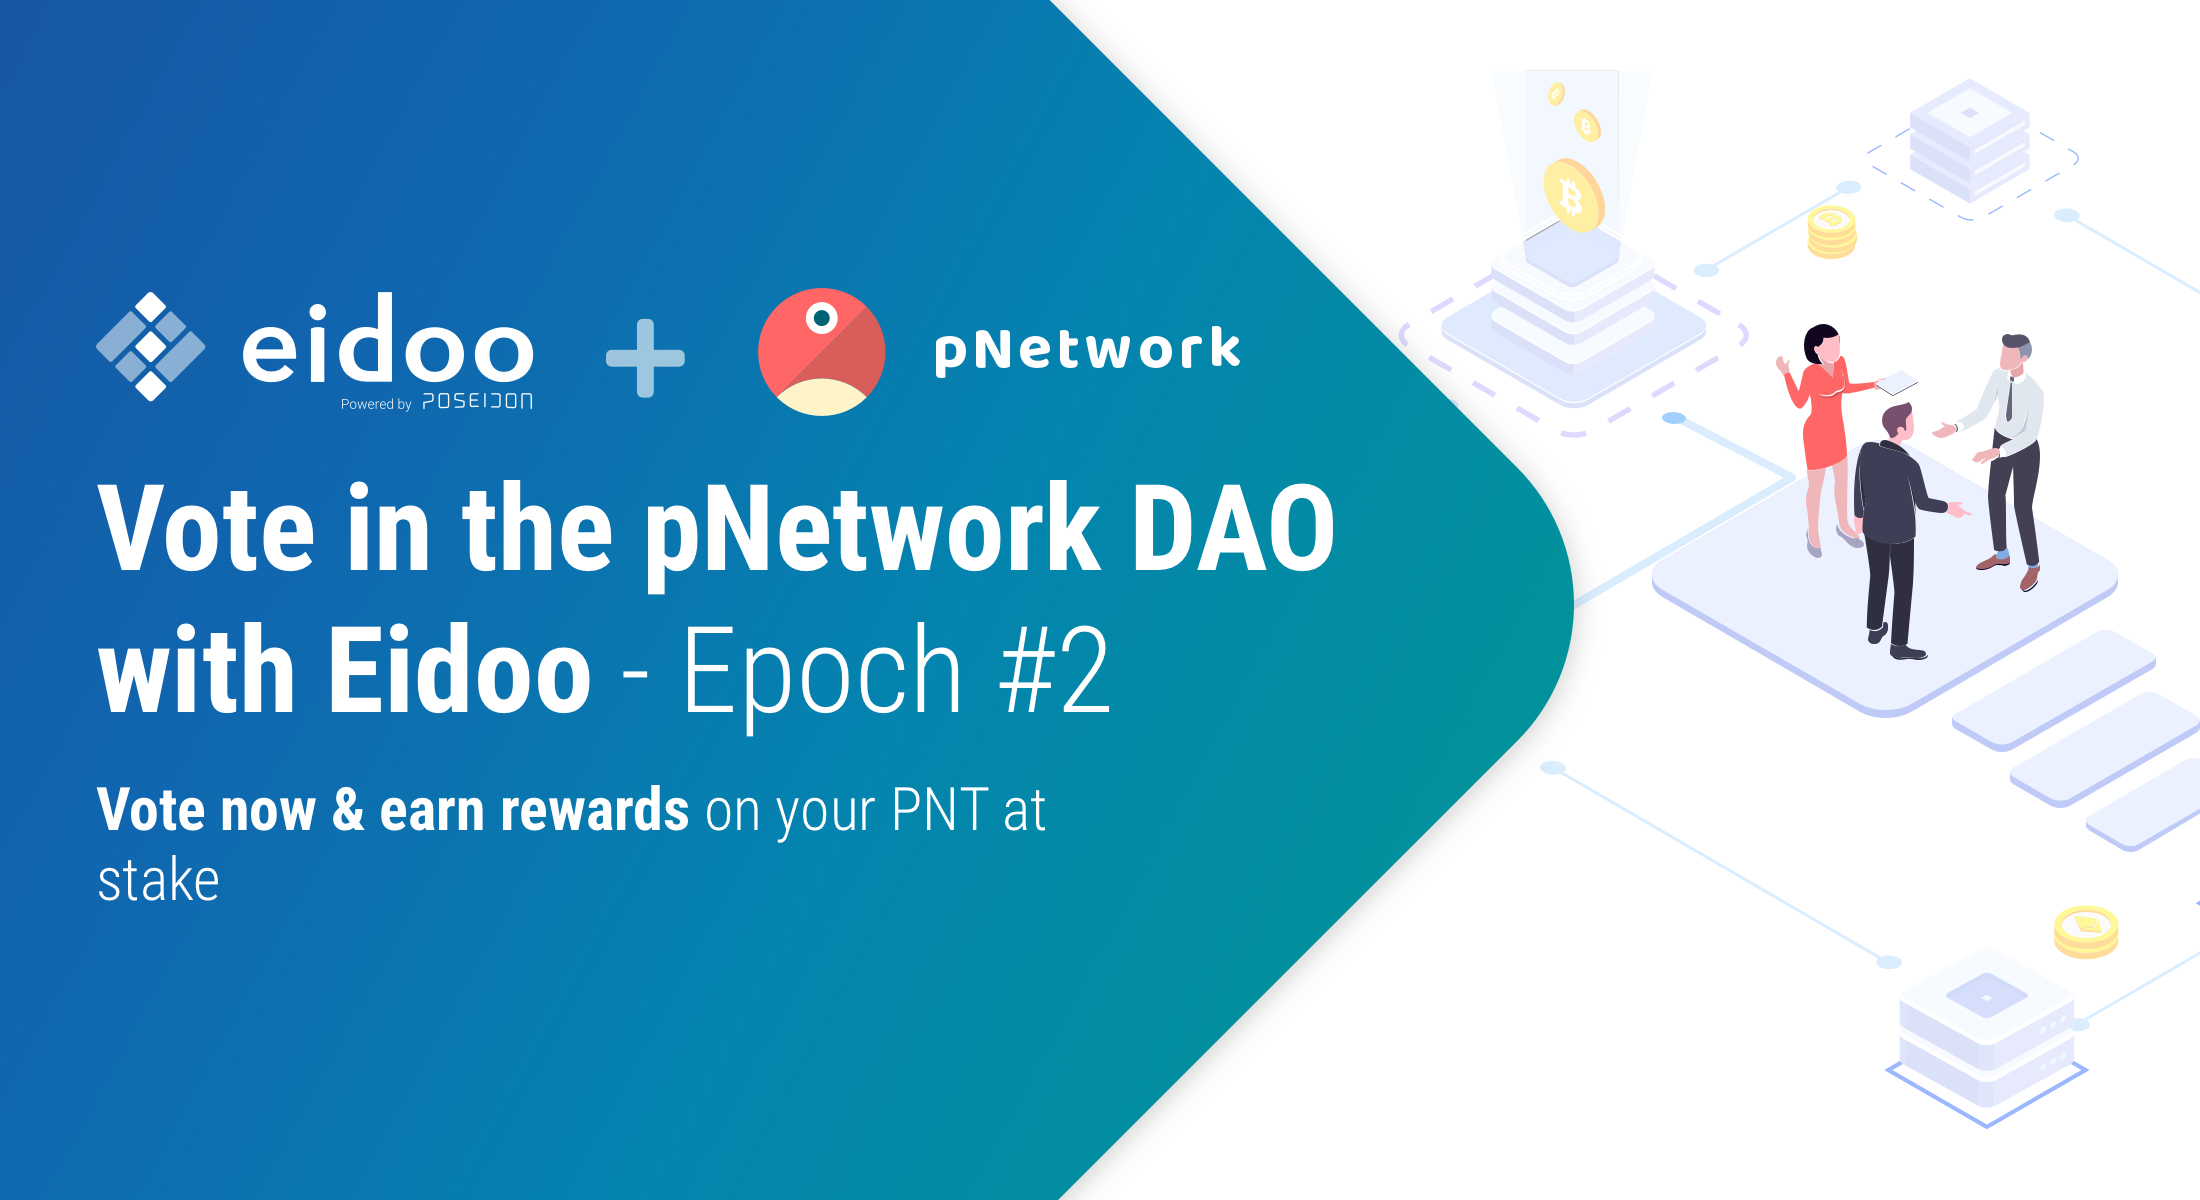 Time to vote! The second pNetwork DAO proposal is now open